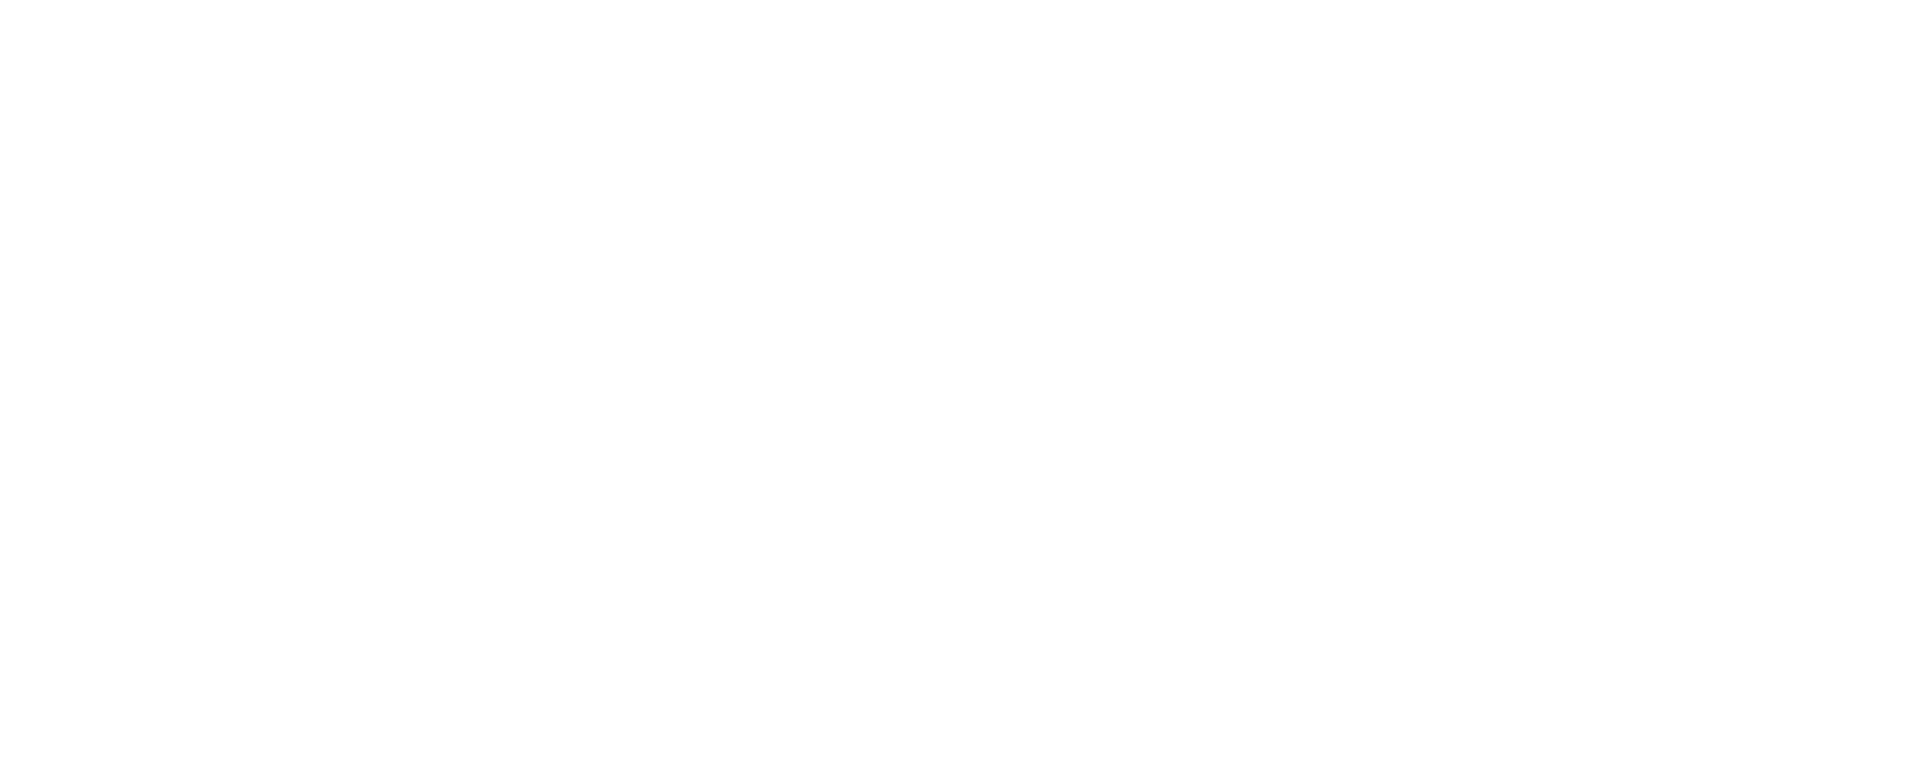 George Oxford Hotel Logo